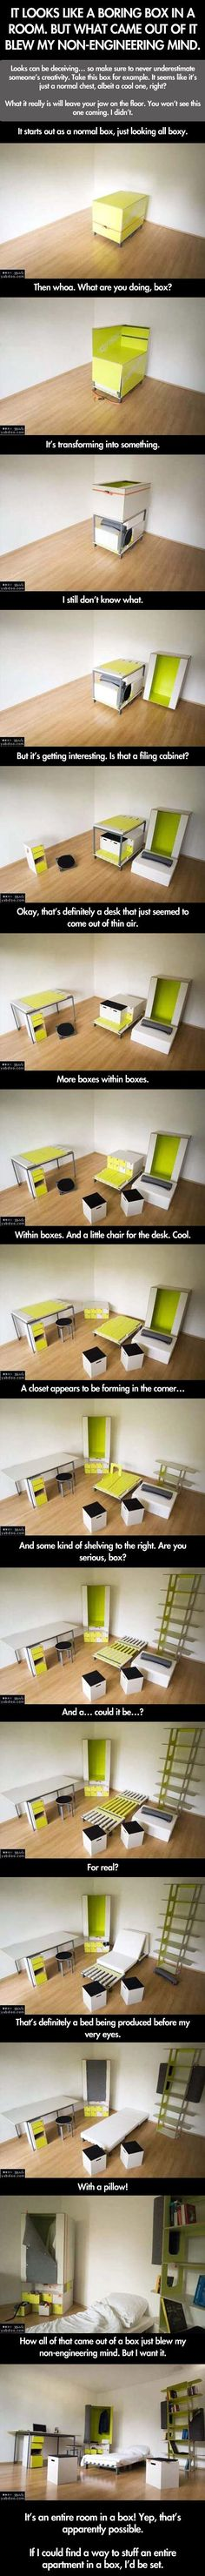 Box in a room becomes something awesome